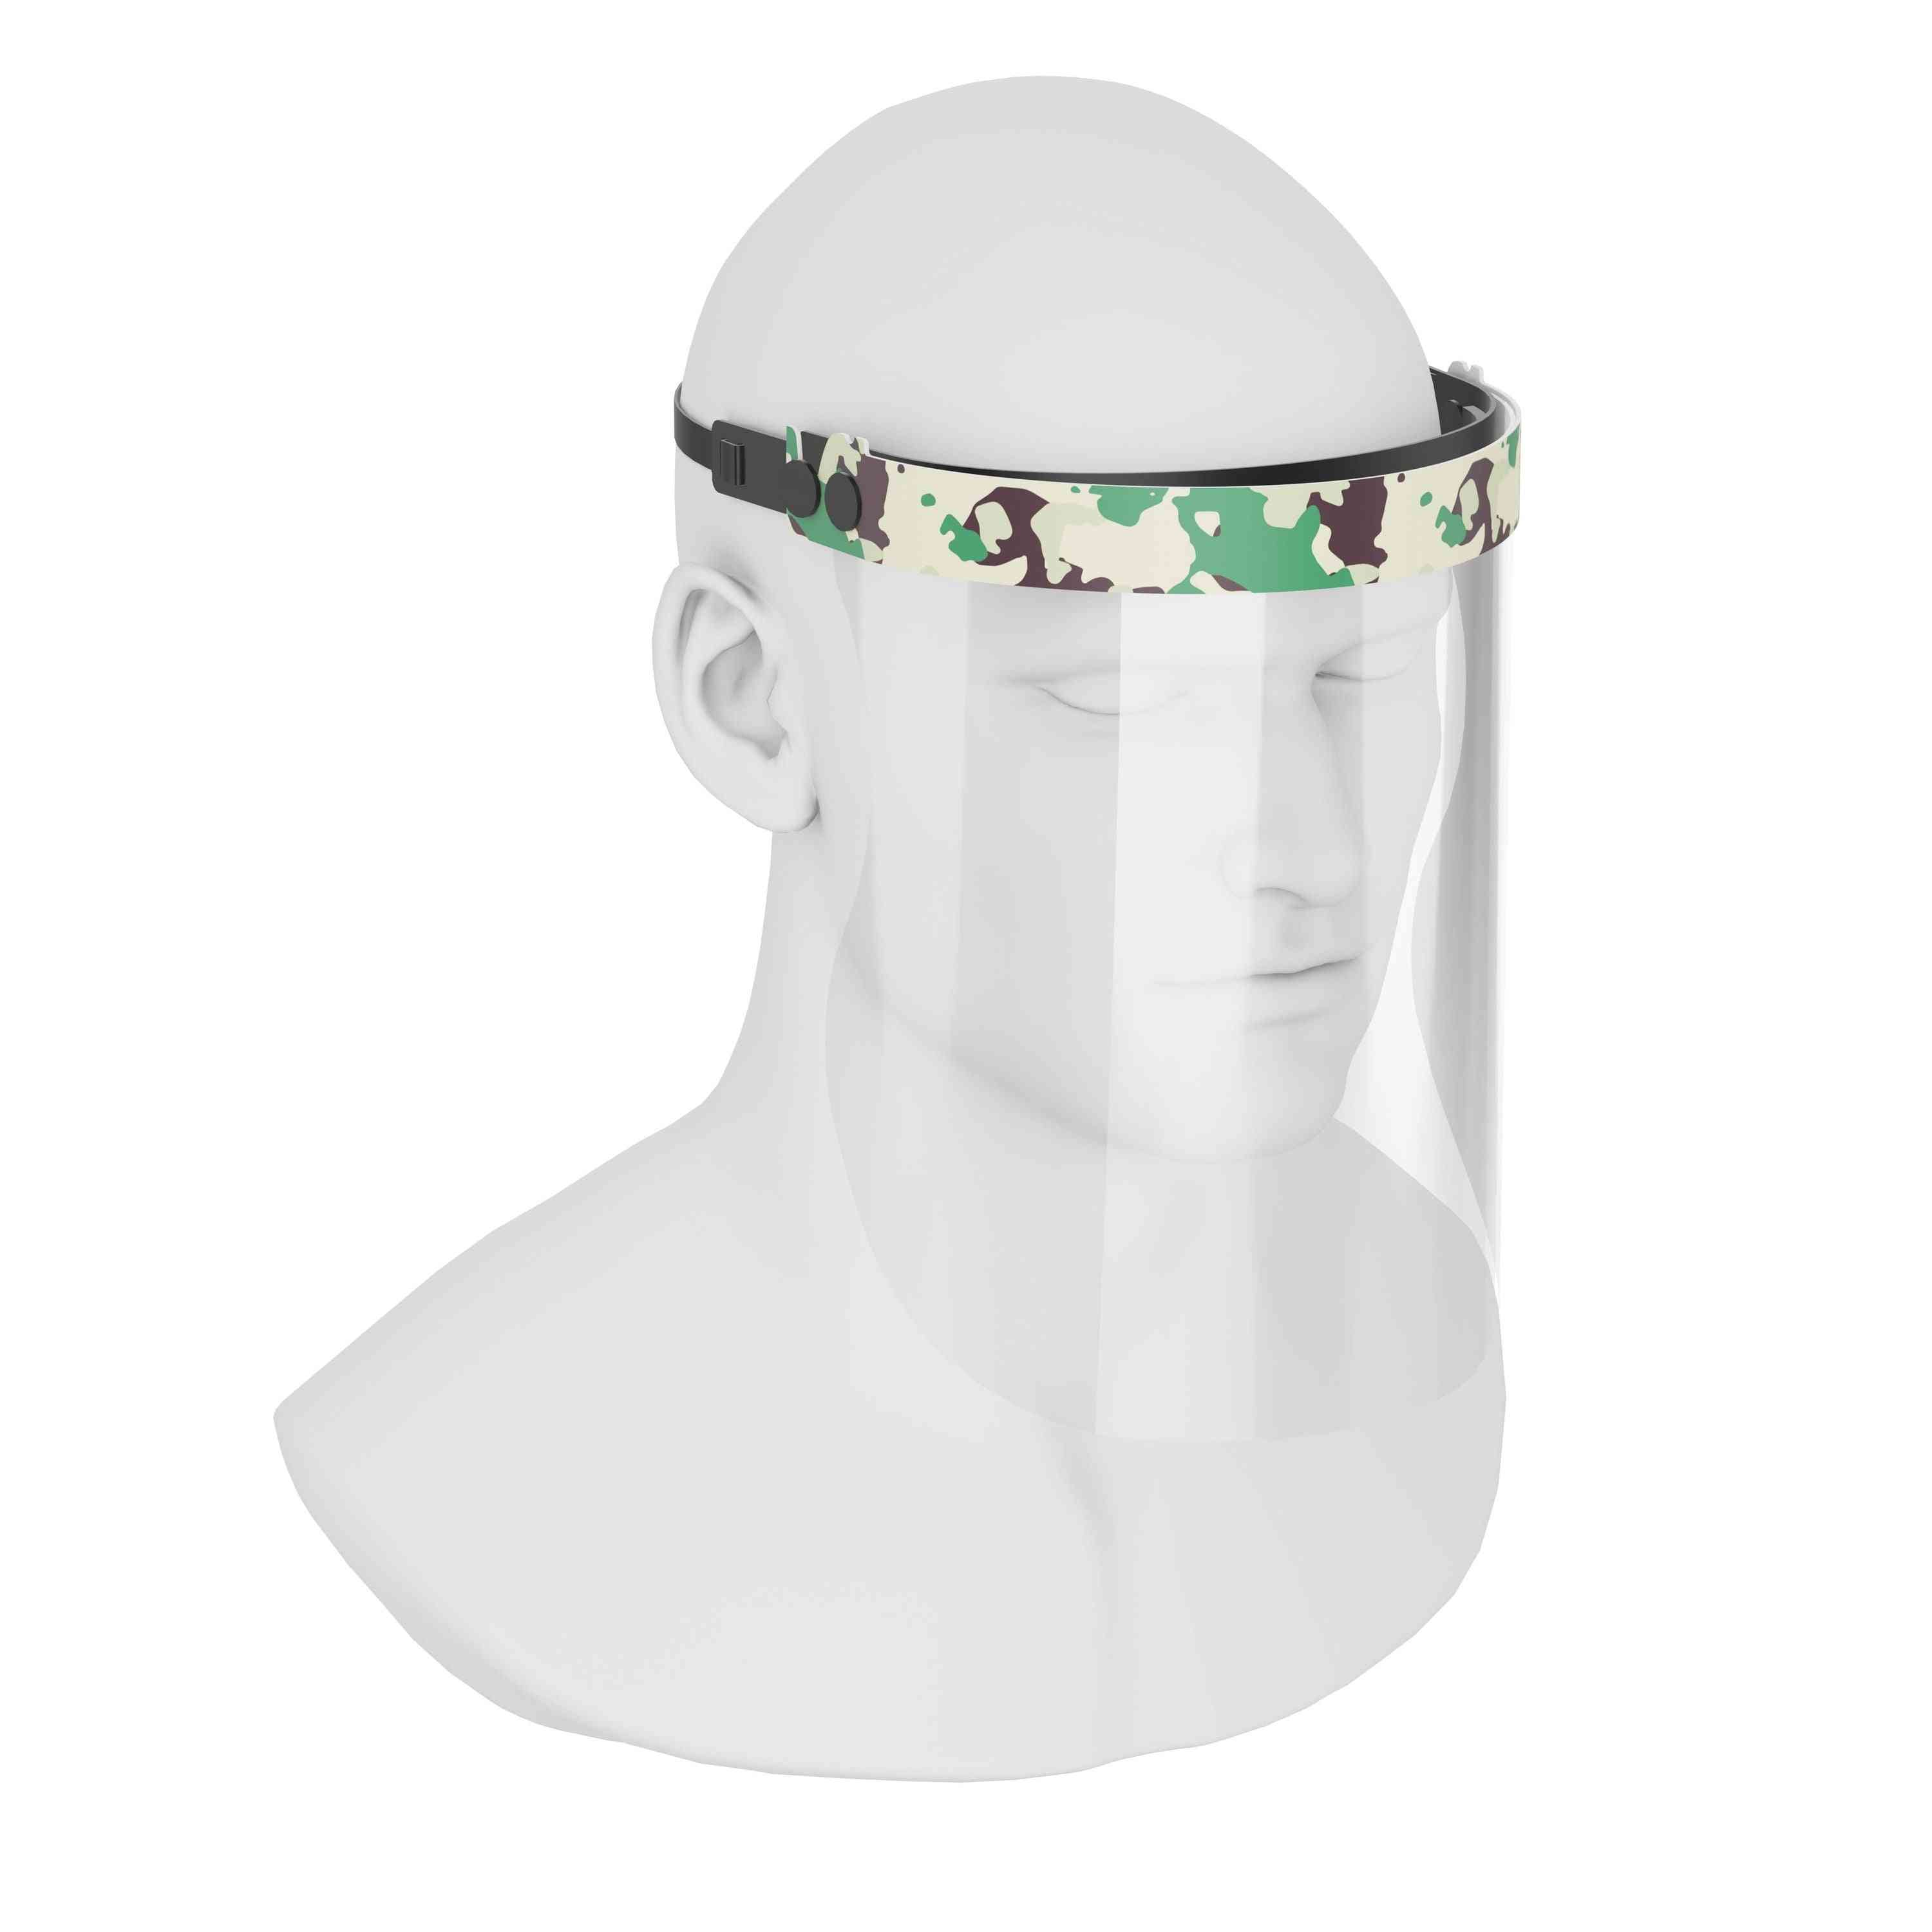 Isolay Face Shield Camouflage